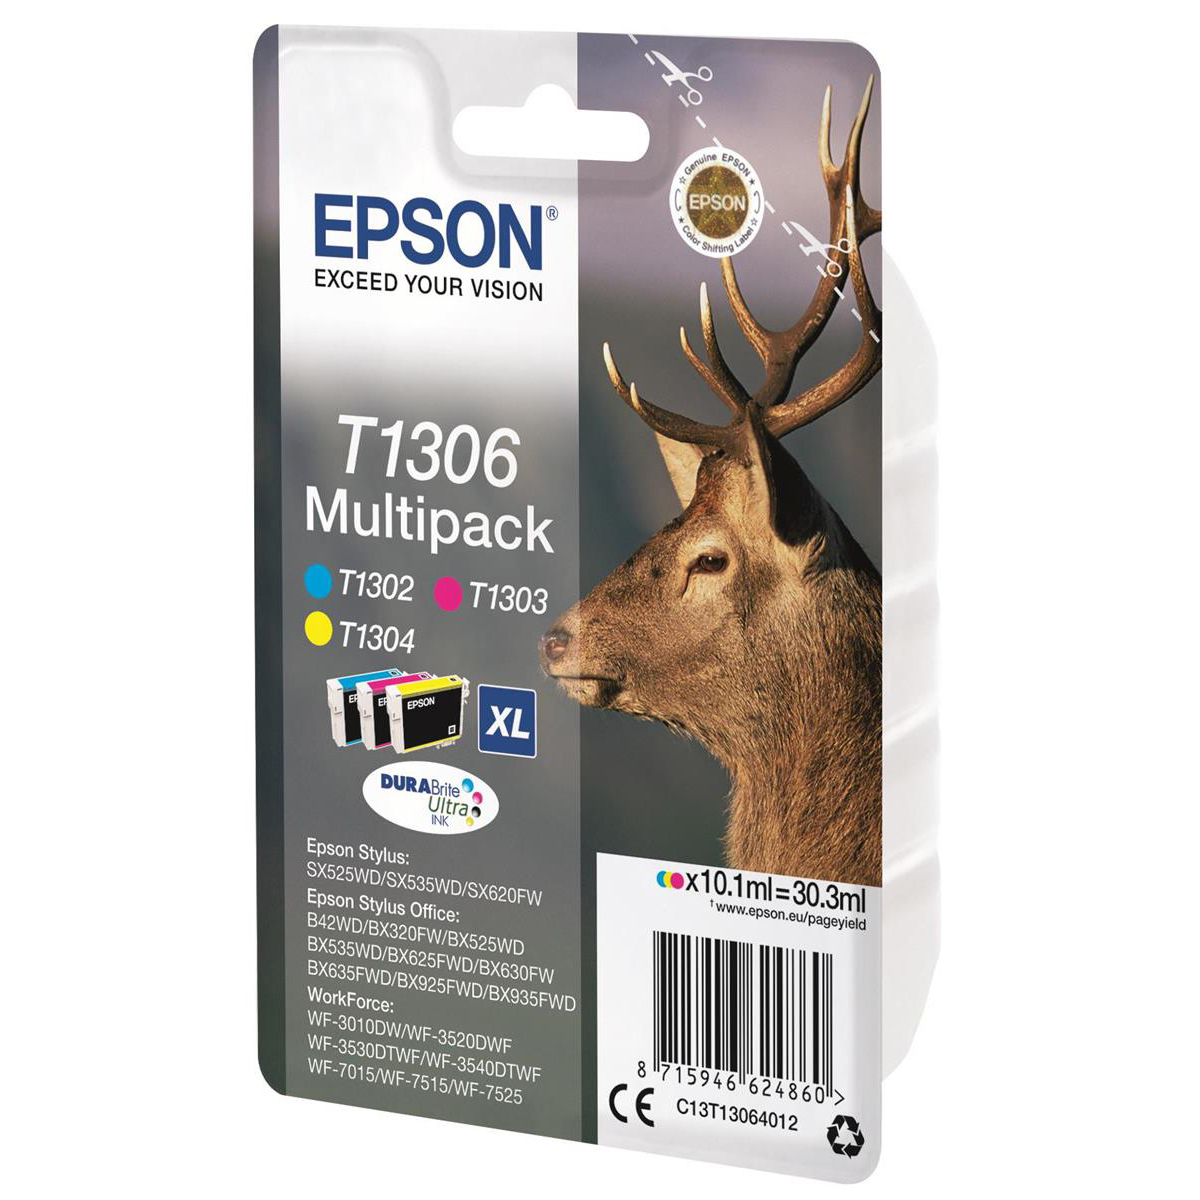 Epson T1306 InkjetCart StagXLPageLife 765ppCyan/600ppMag/Yell1005pp 10.1ml Ref C13T13064012 Pack 3